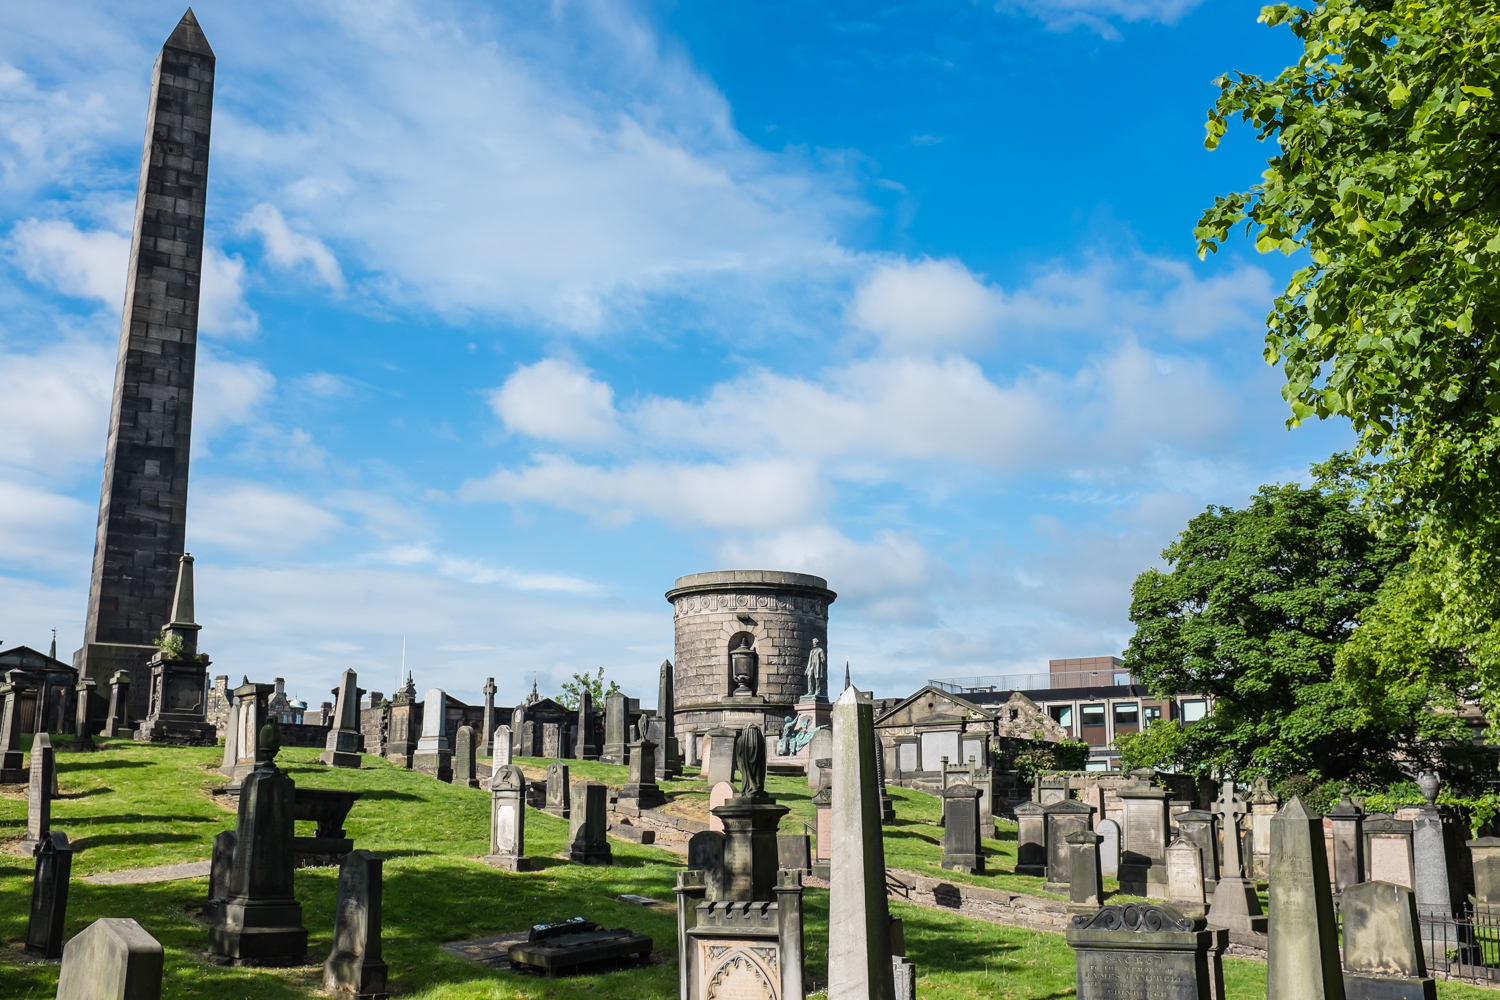 Old Calton Hill Cemetery